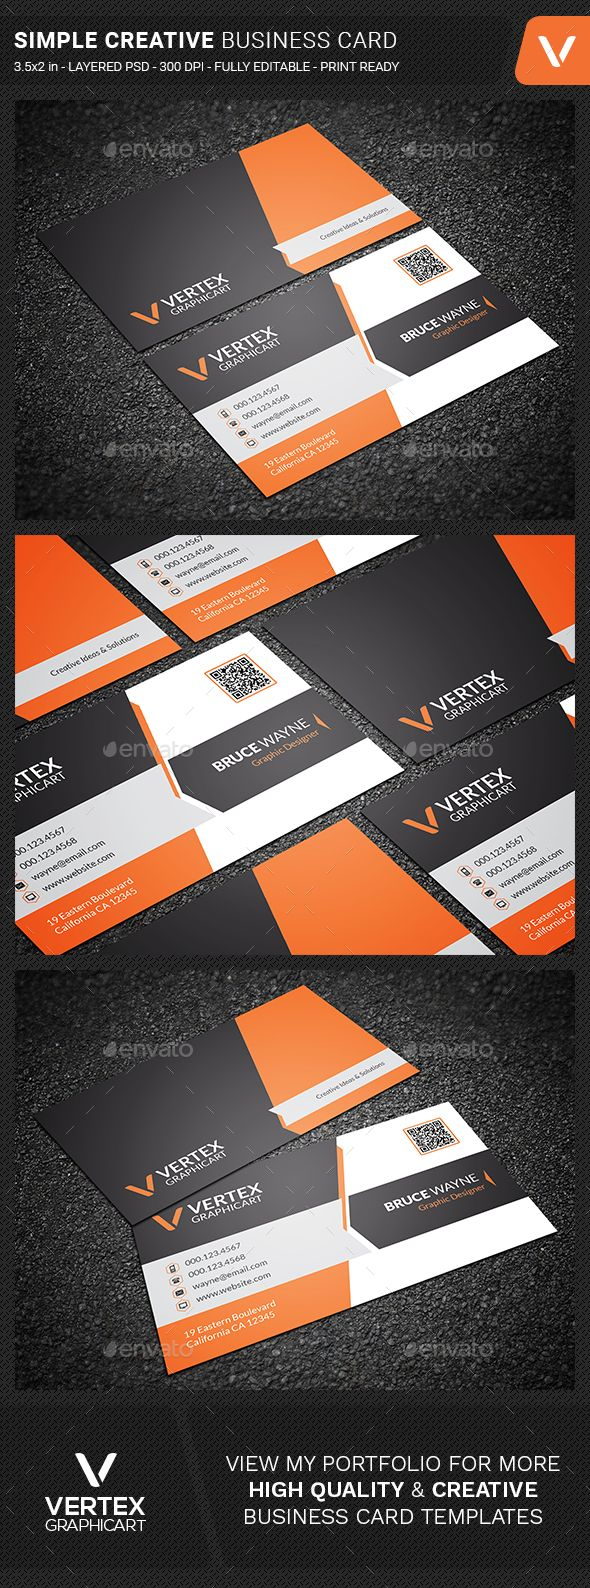 Simple Creative Business Card - Creative #Business #Cards Download ...